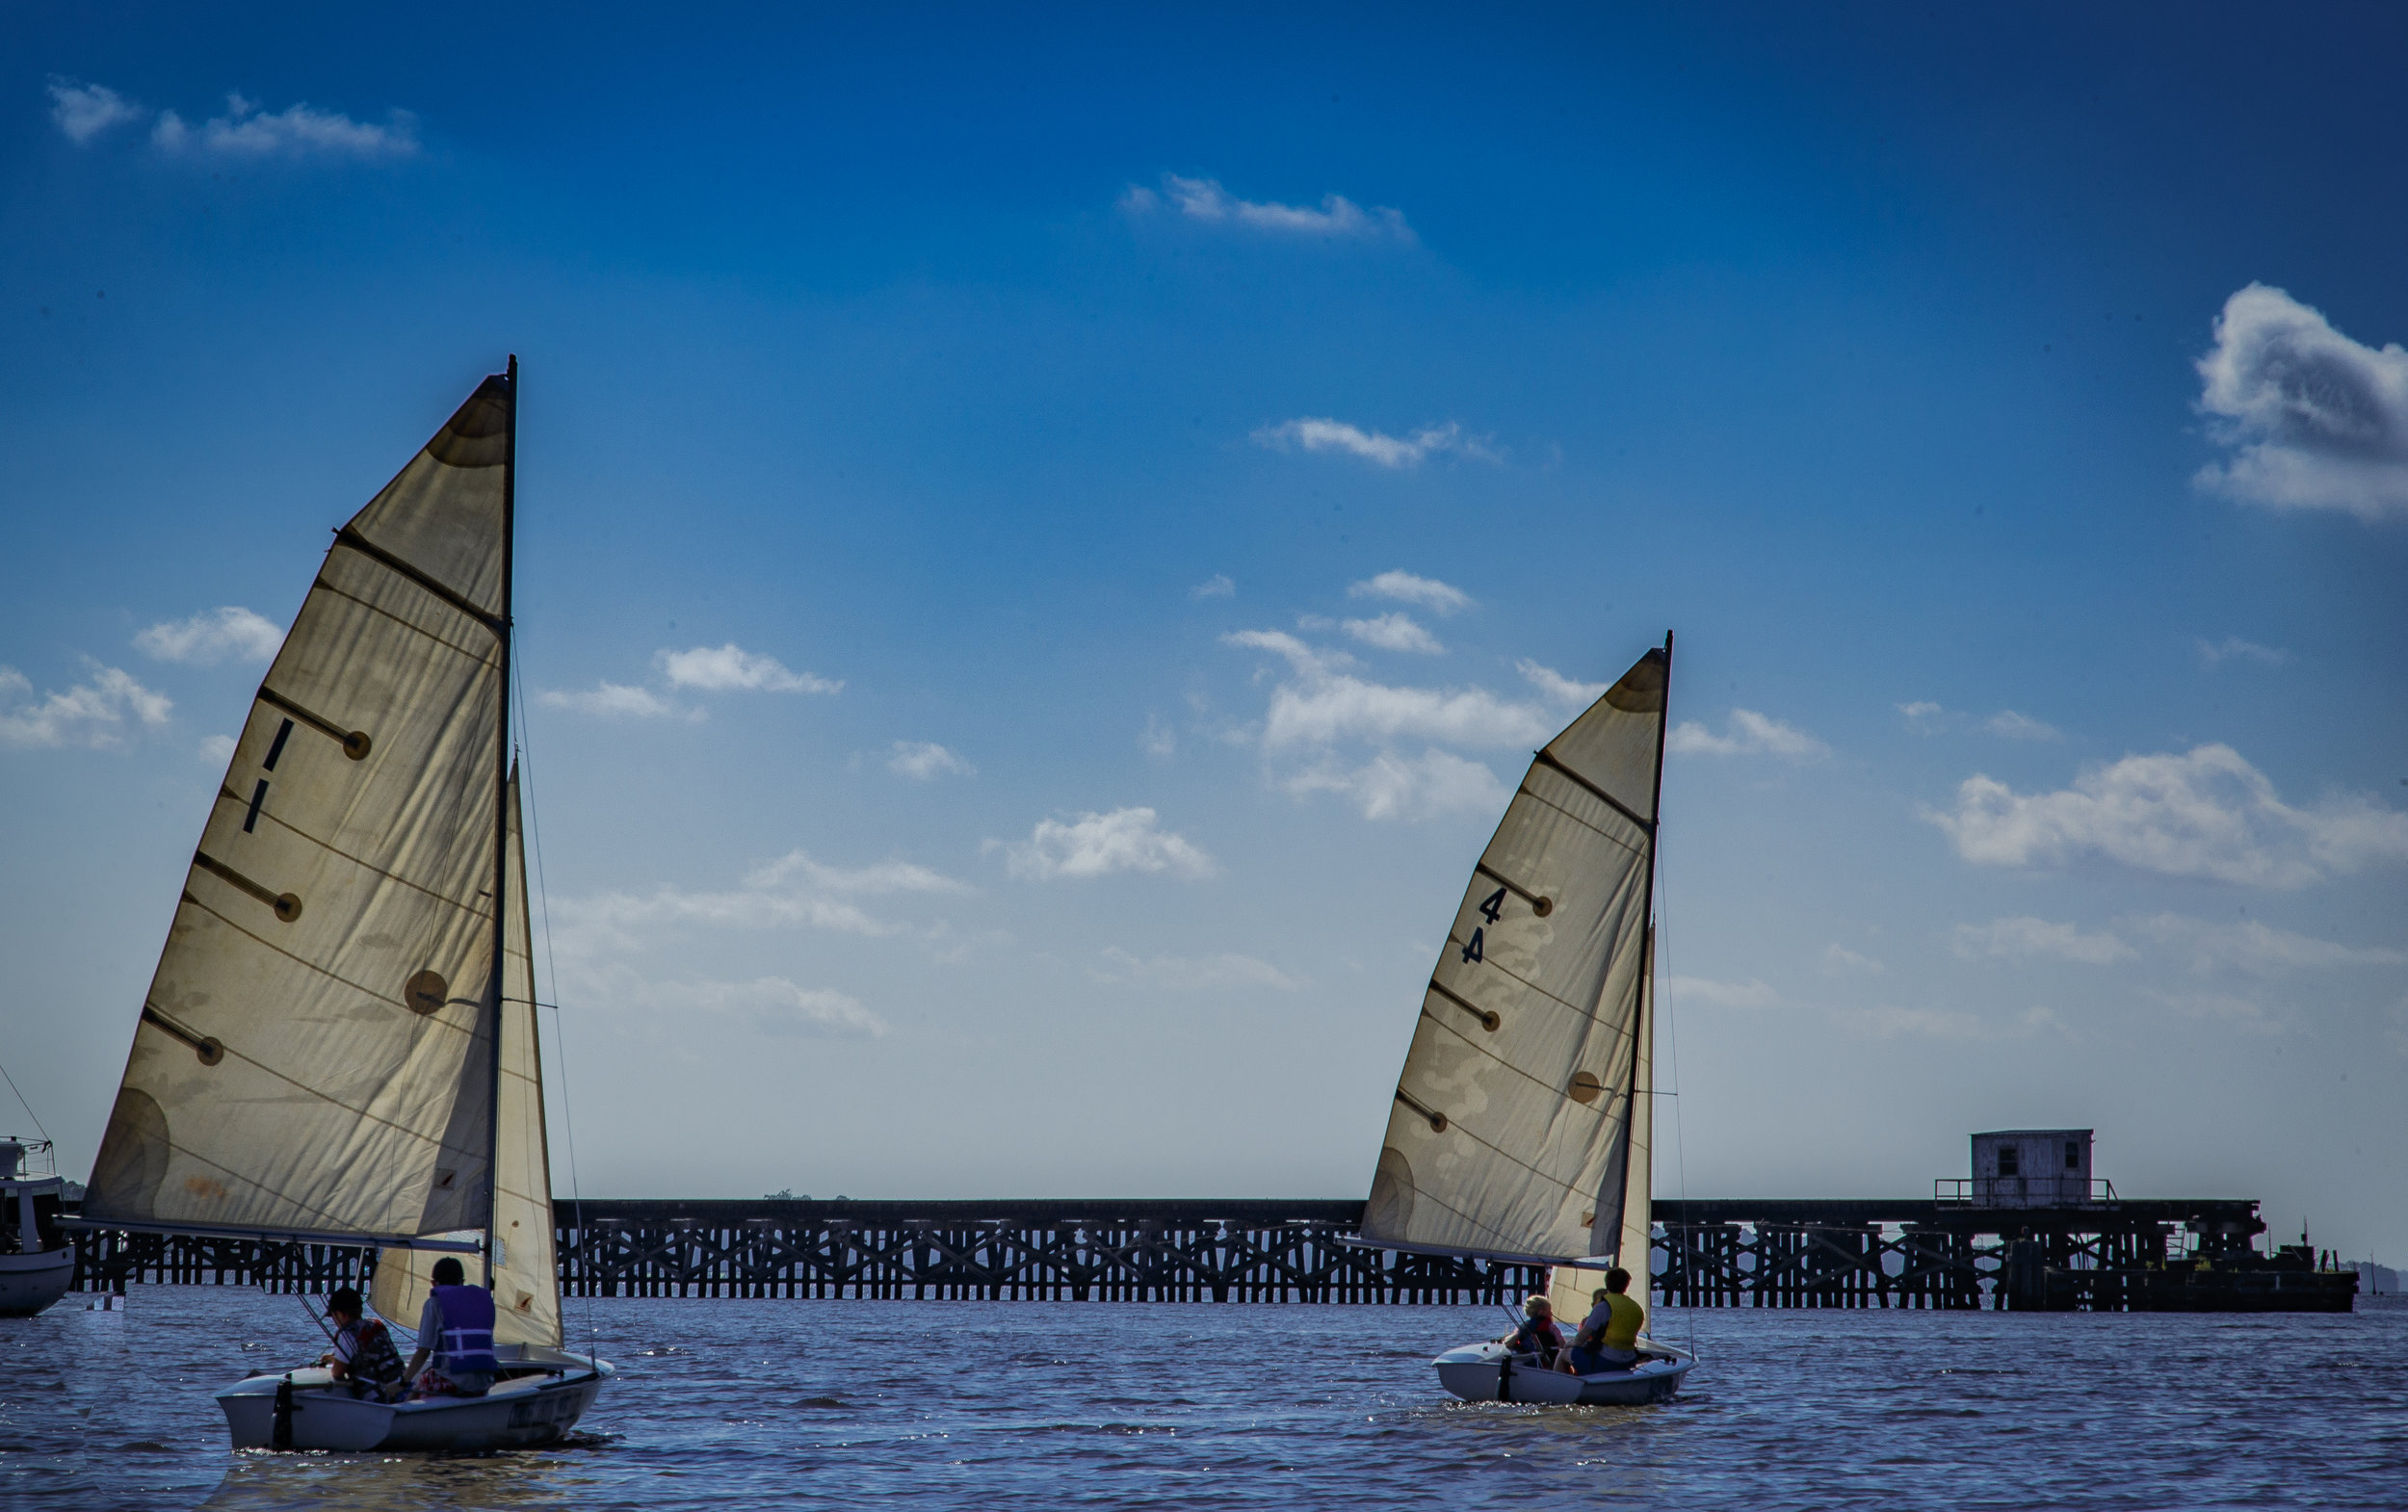 Sailing School & Trestle-2.jpg